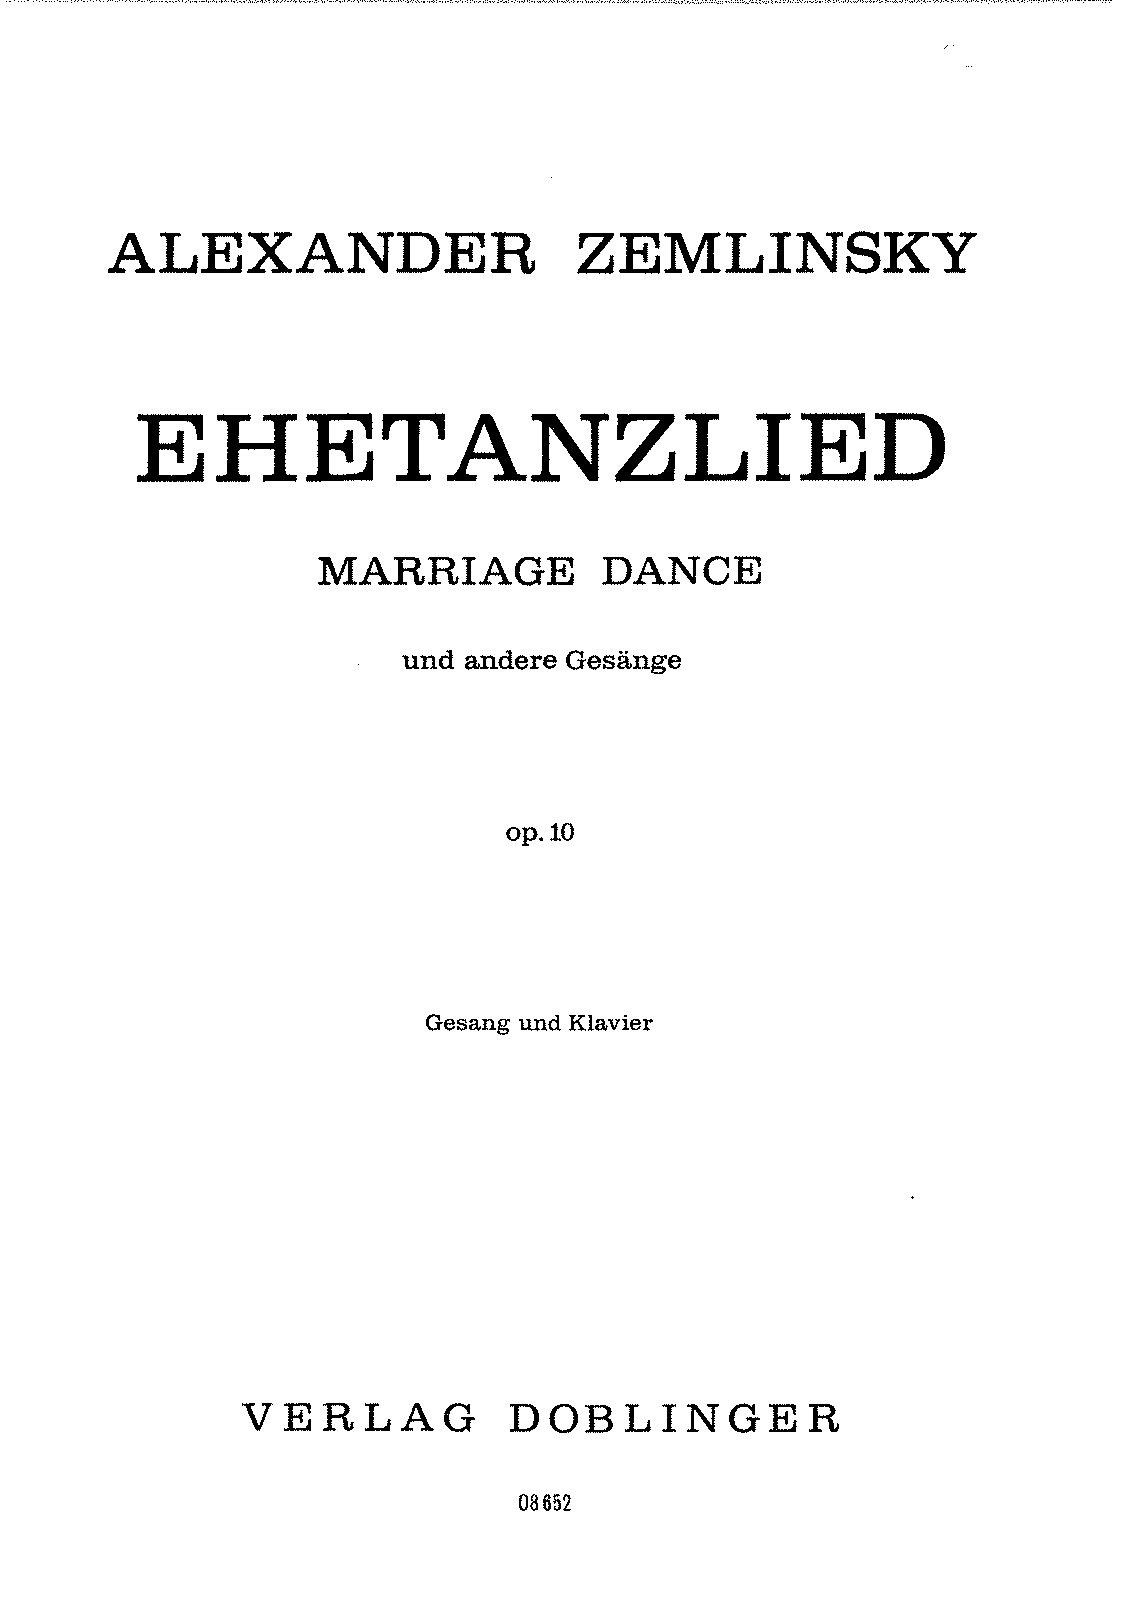 PMLP112240-Zemlinsky, Alexander - Marriage Dance op. 10-voice and piano-.pdf